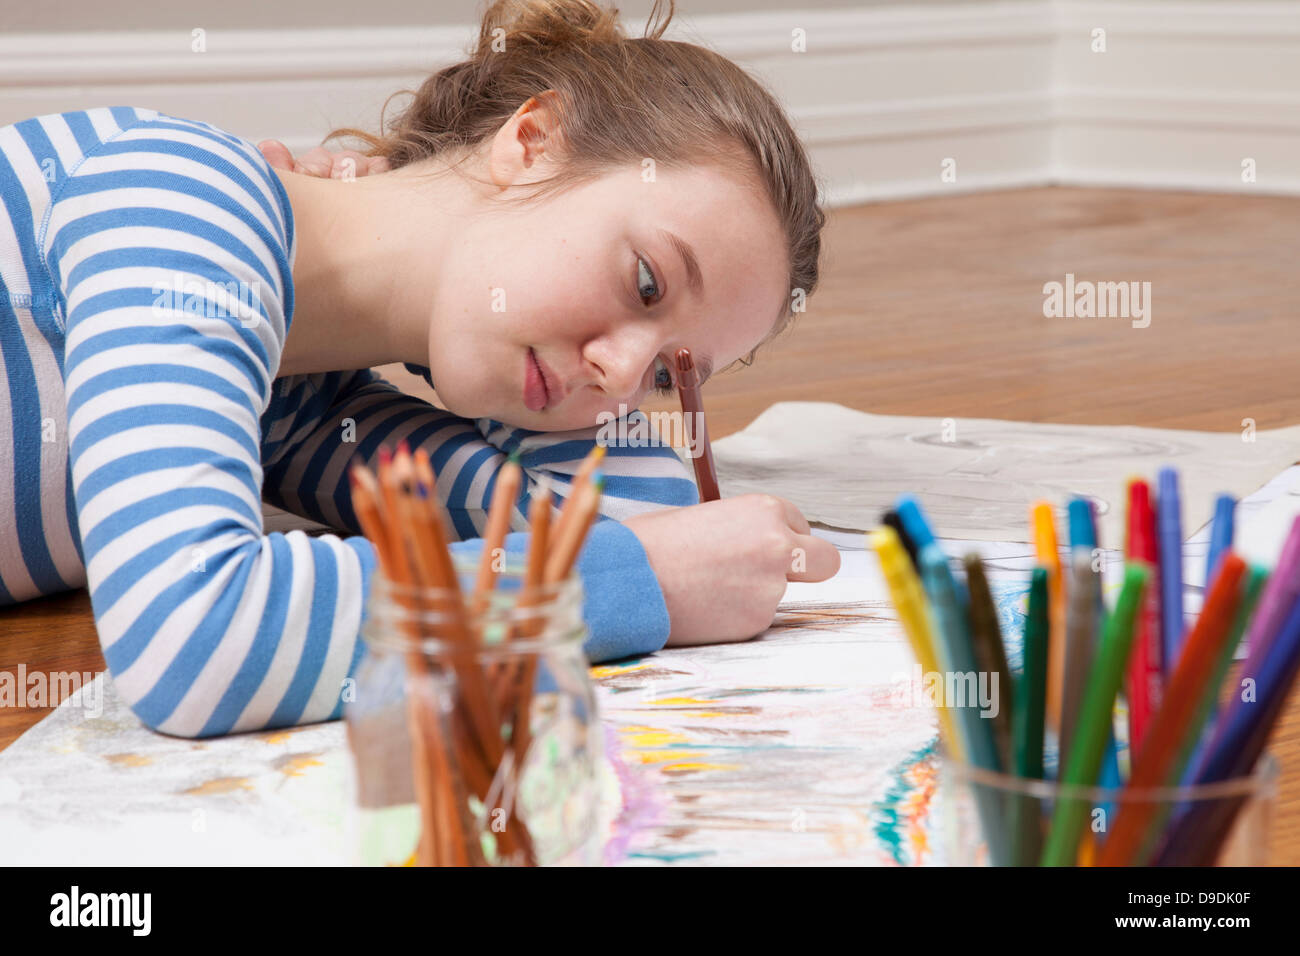 Girl lying on floor drawing picture - Stock Image